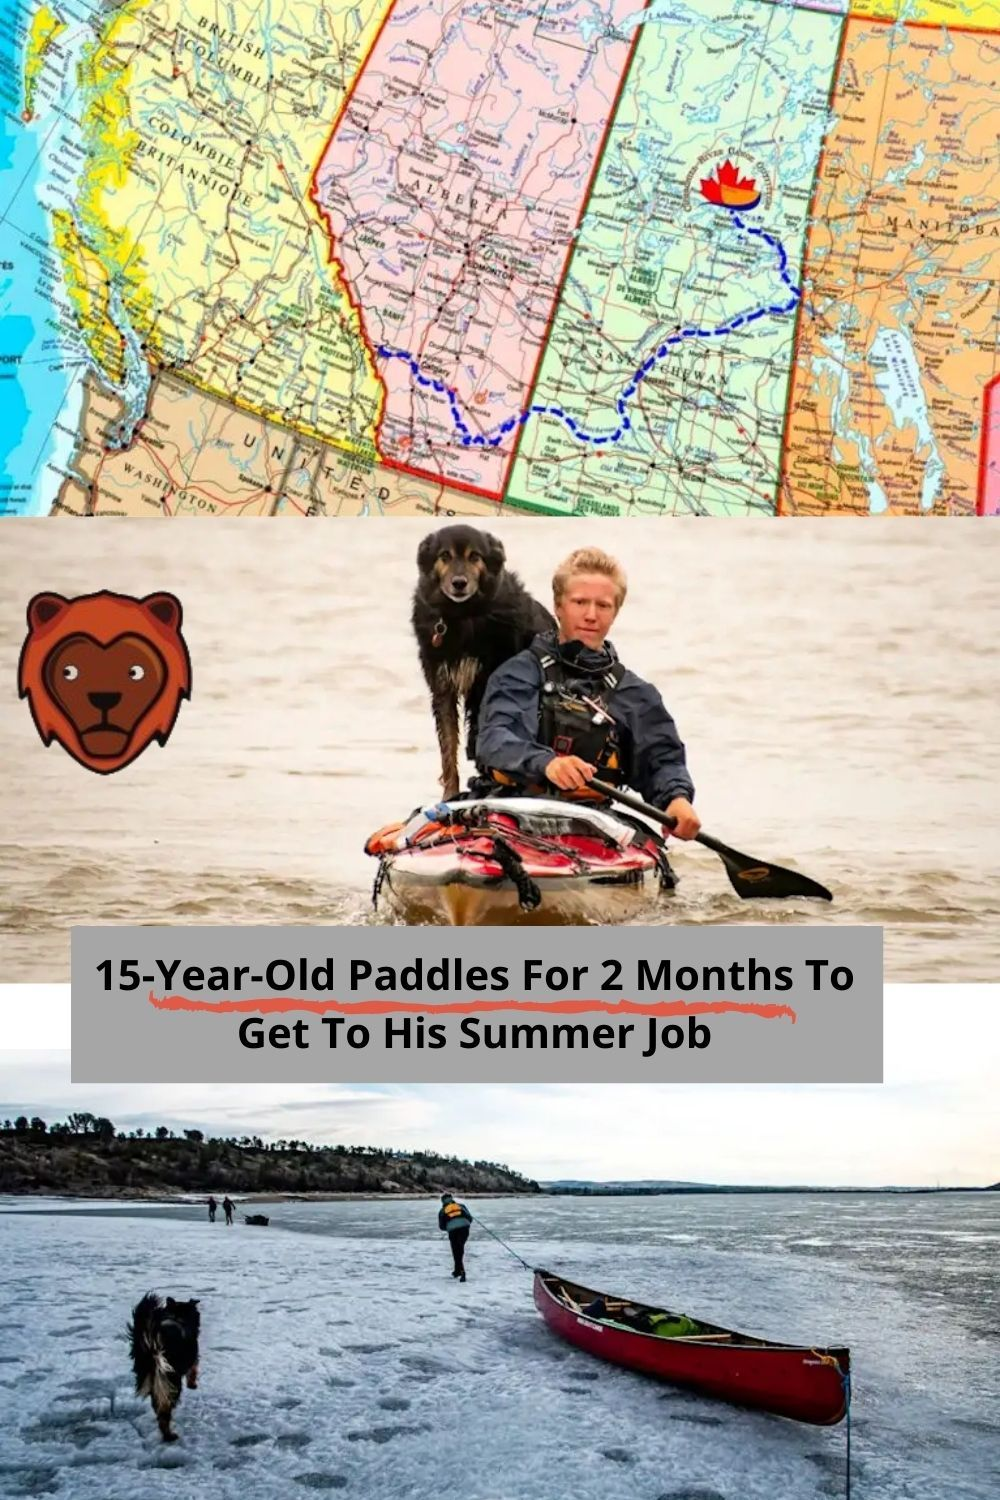 15 Year Old Paddles For 2 Months To Get To His Summer Job In 2020 Funny Pictures Funny Photos Amazing